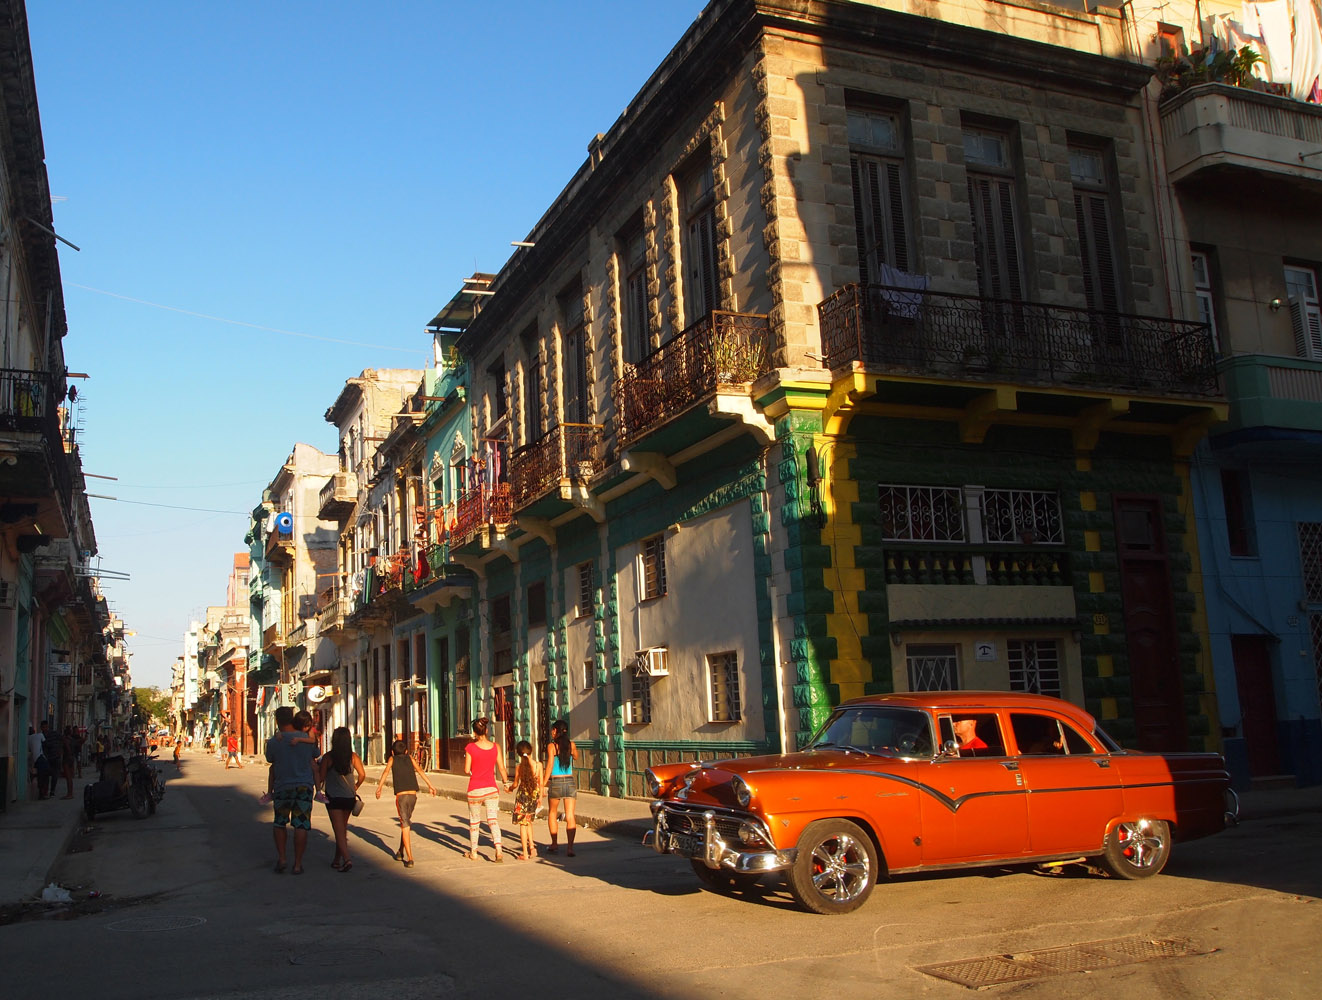 Cuba-Havana-Centro-People-Red-Car.jpg